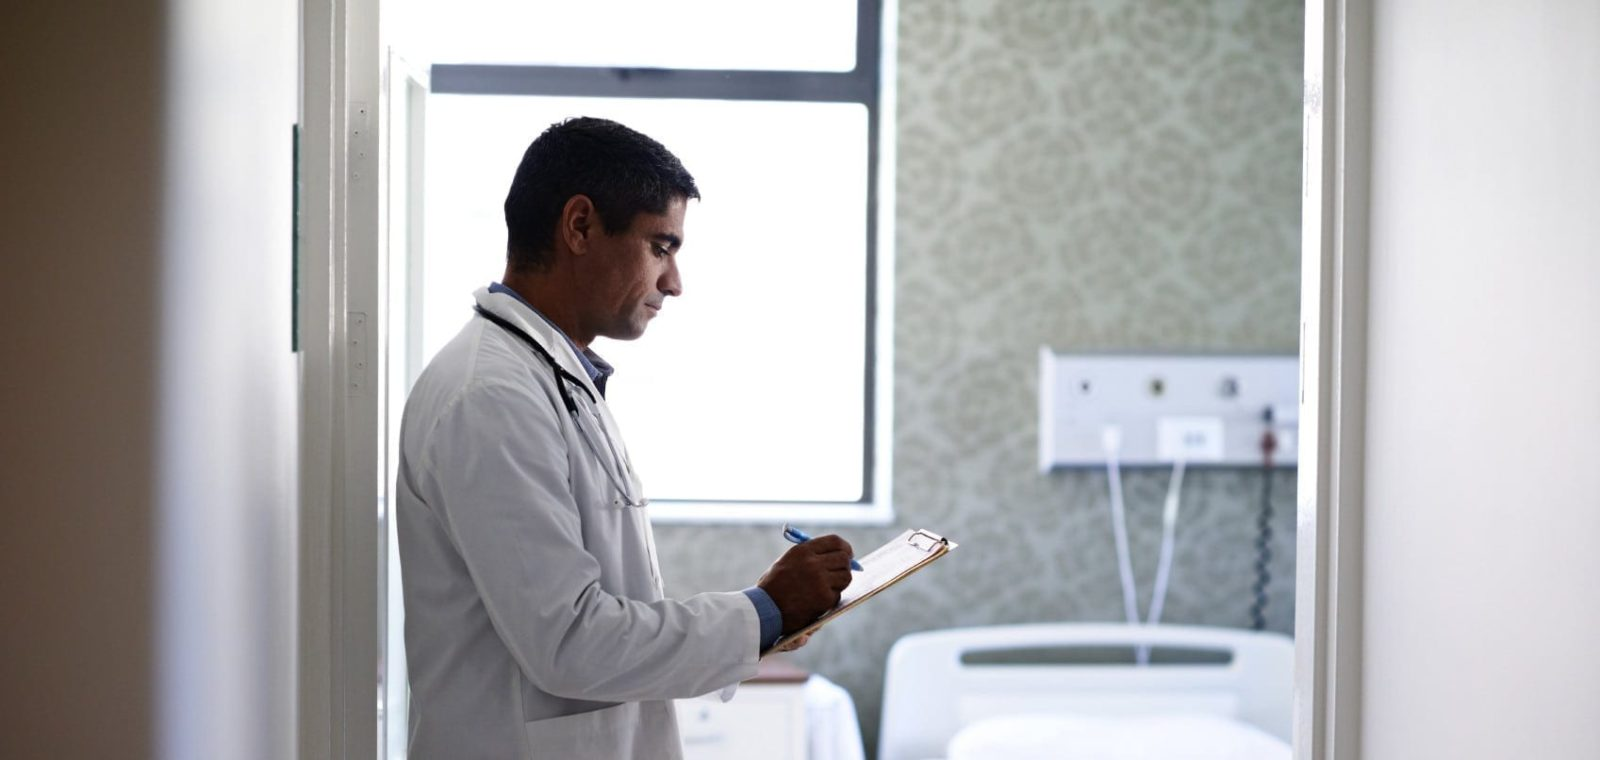 Doctor Completing Medical Forms Stock Photo